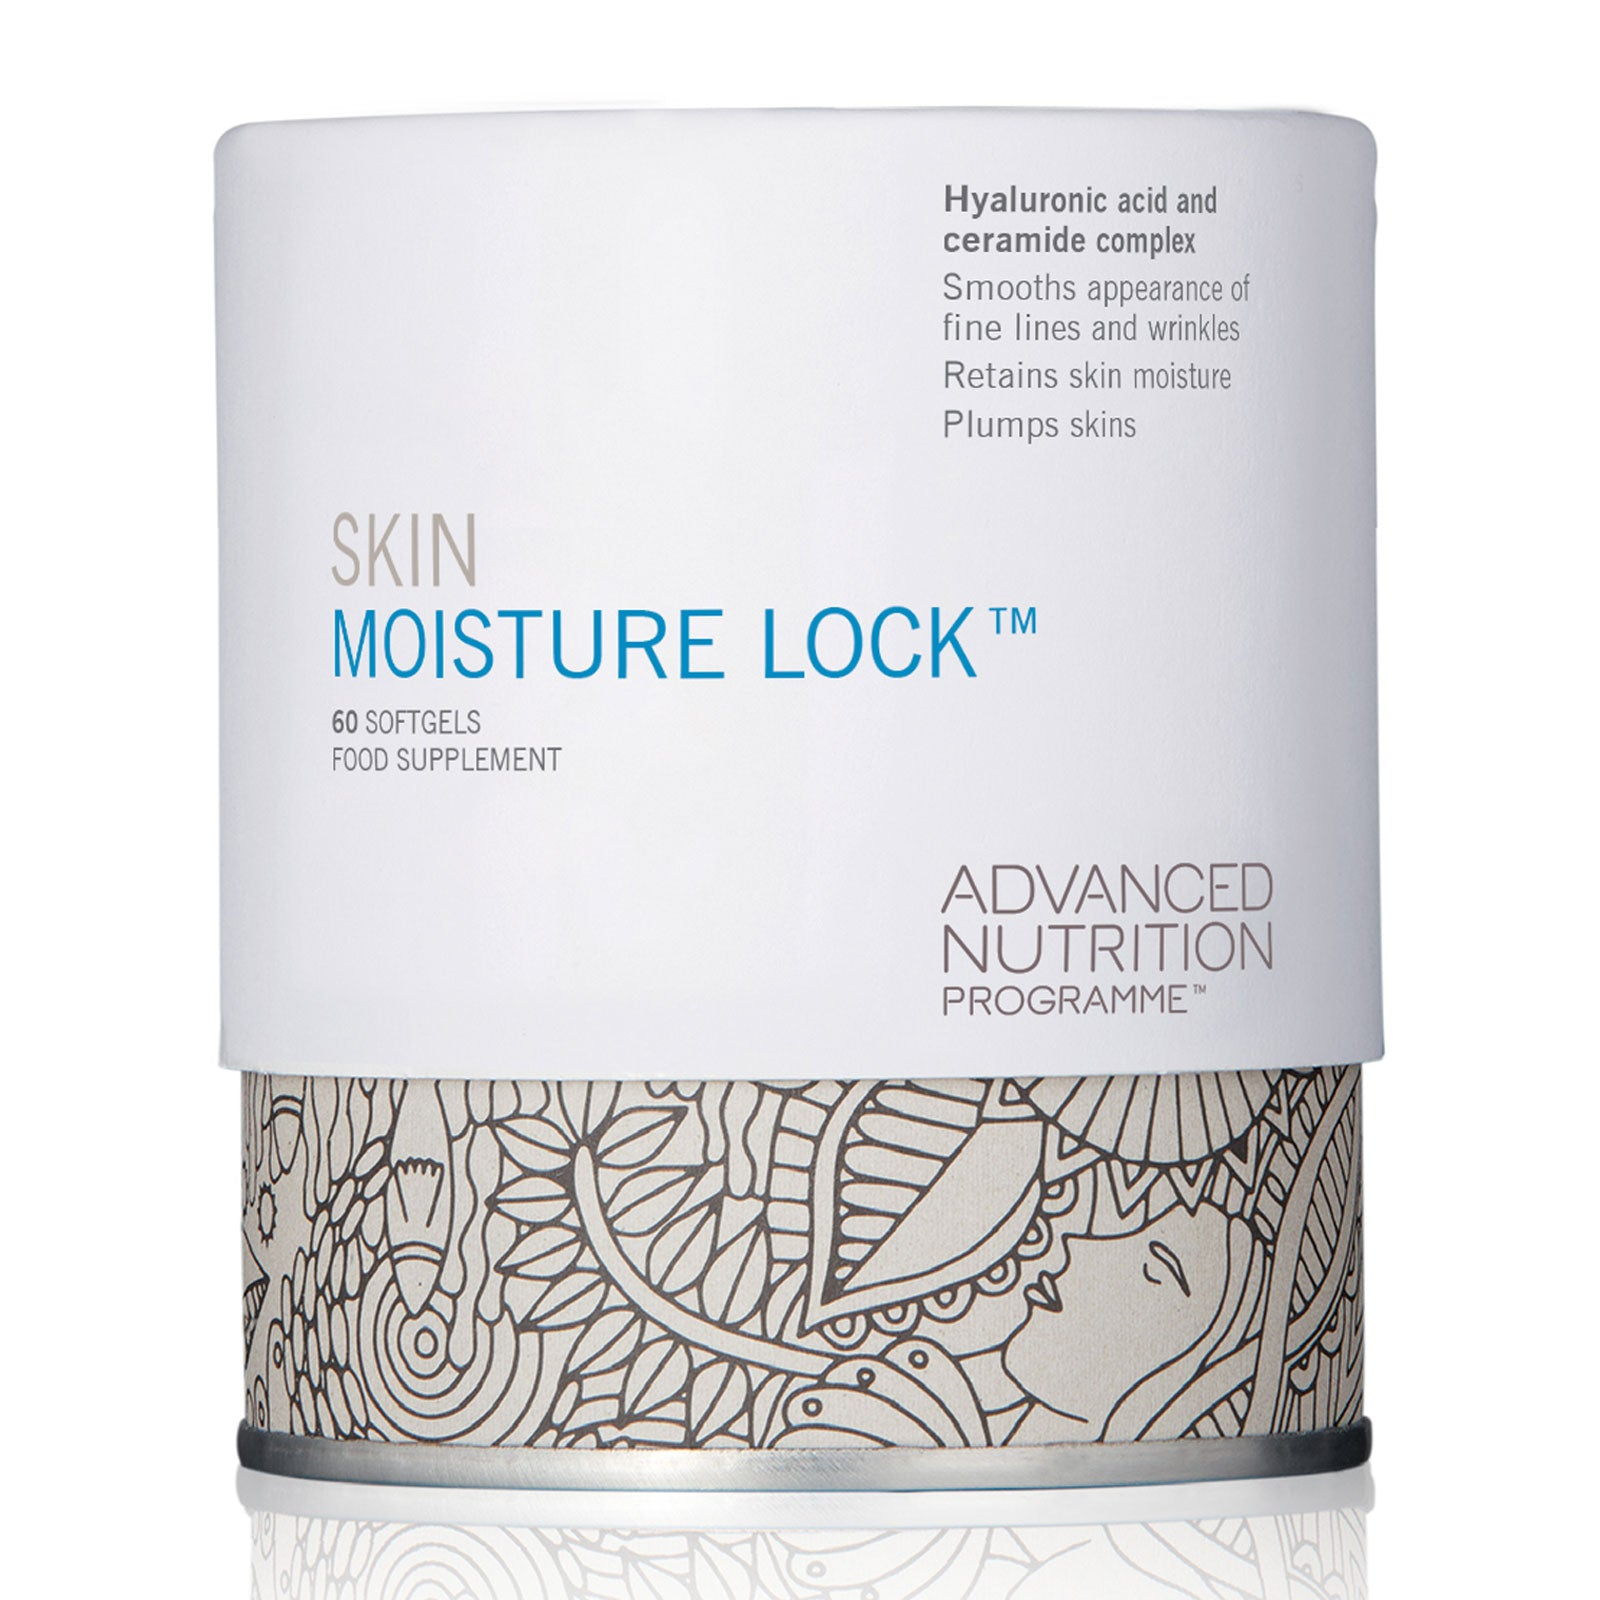 Advanced Nutrition Programme™ Skin Moisture Lock x 60 Softgels